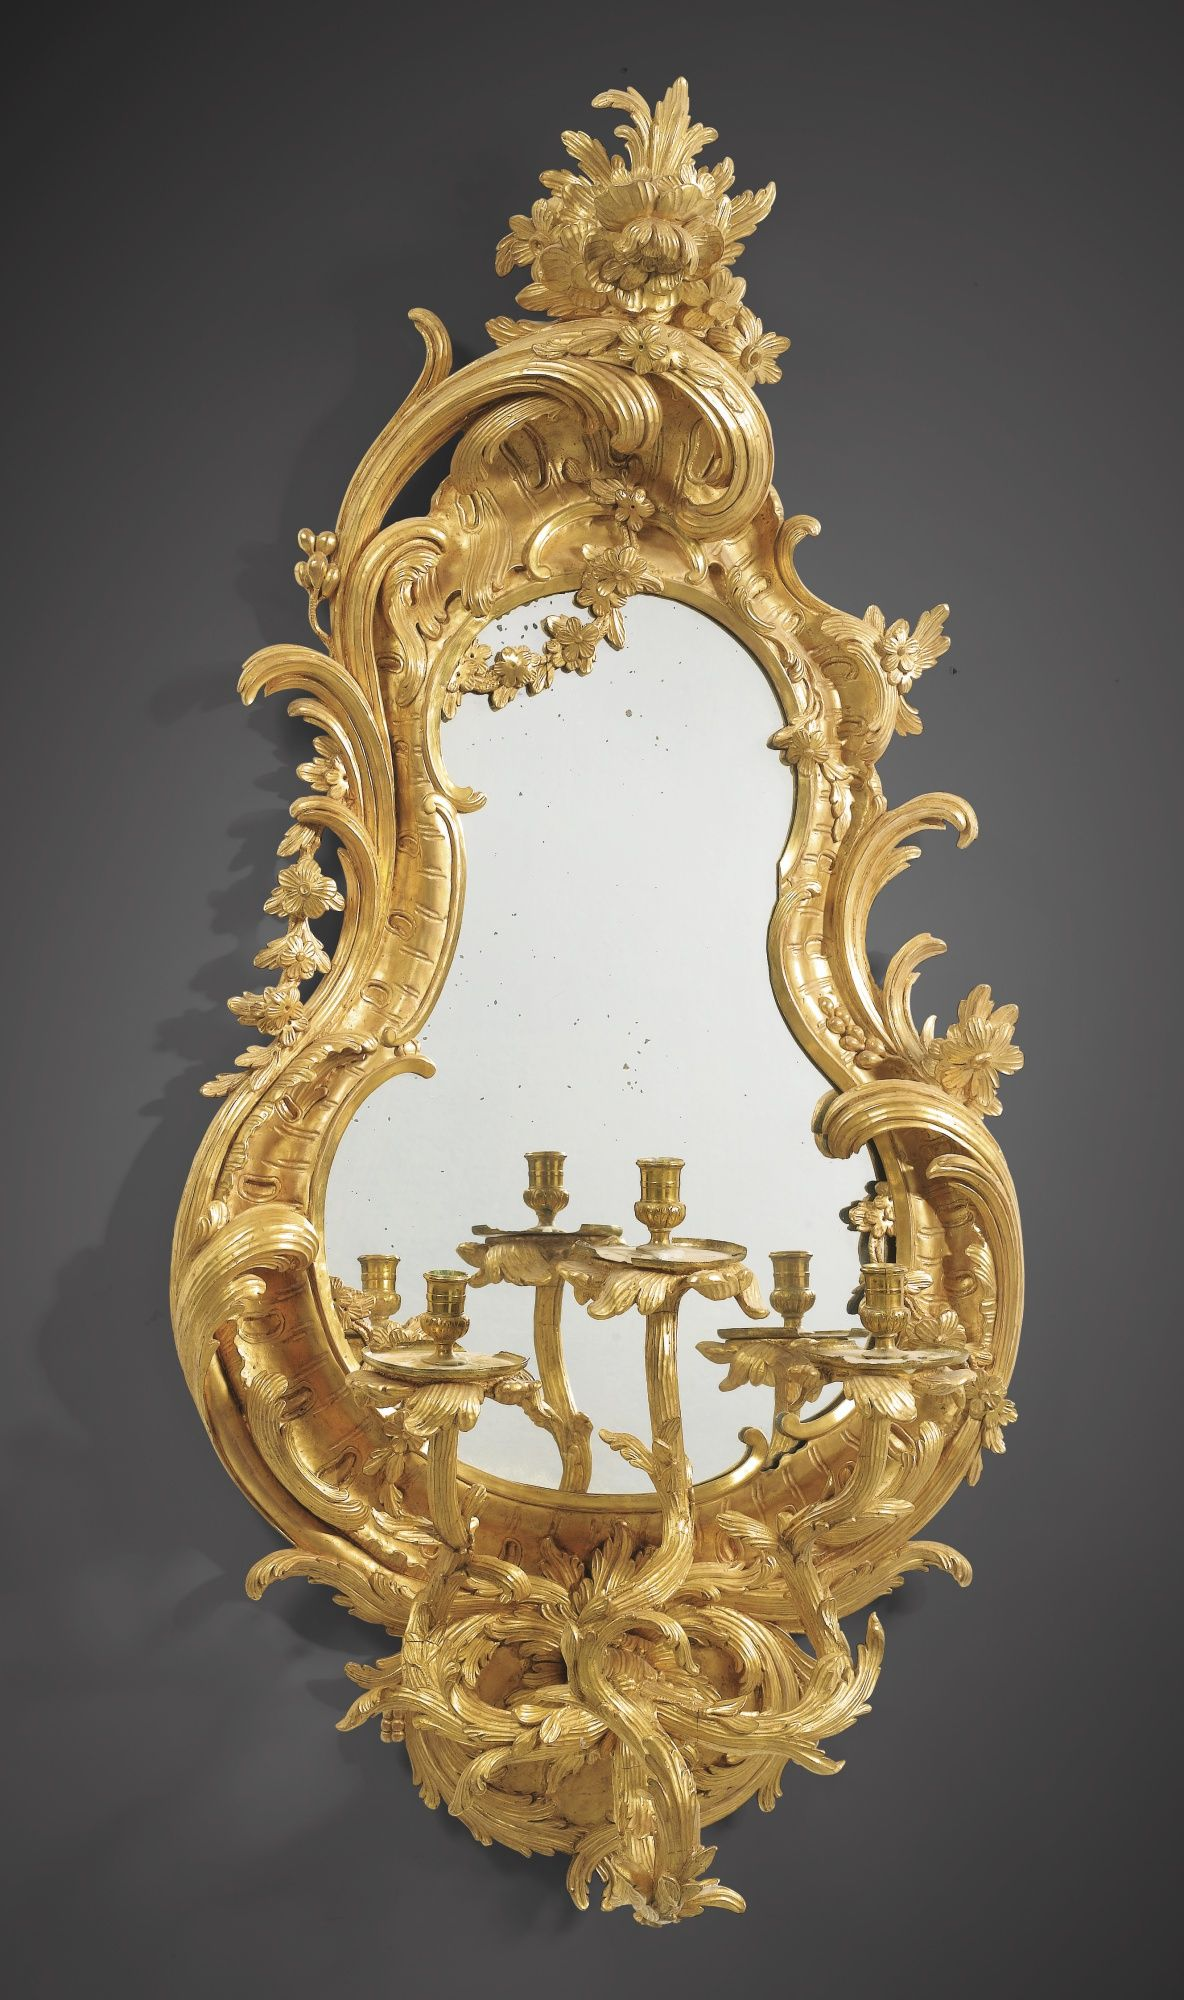 C 1750 1760 A Pair Of Carved Giltwood Mirrors Fitted As Wall Lights Probably German Circa 1750 1760 Estimate 50 000 Spiegel Antike Spiegel Spiegel Rahmen